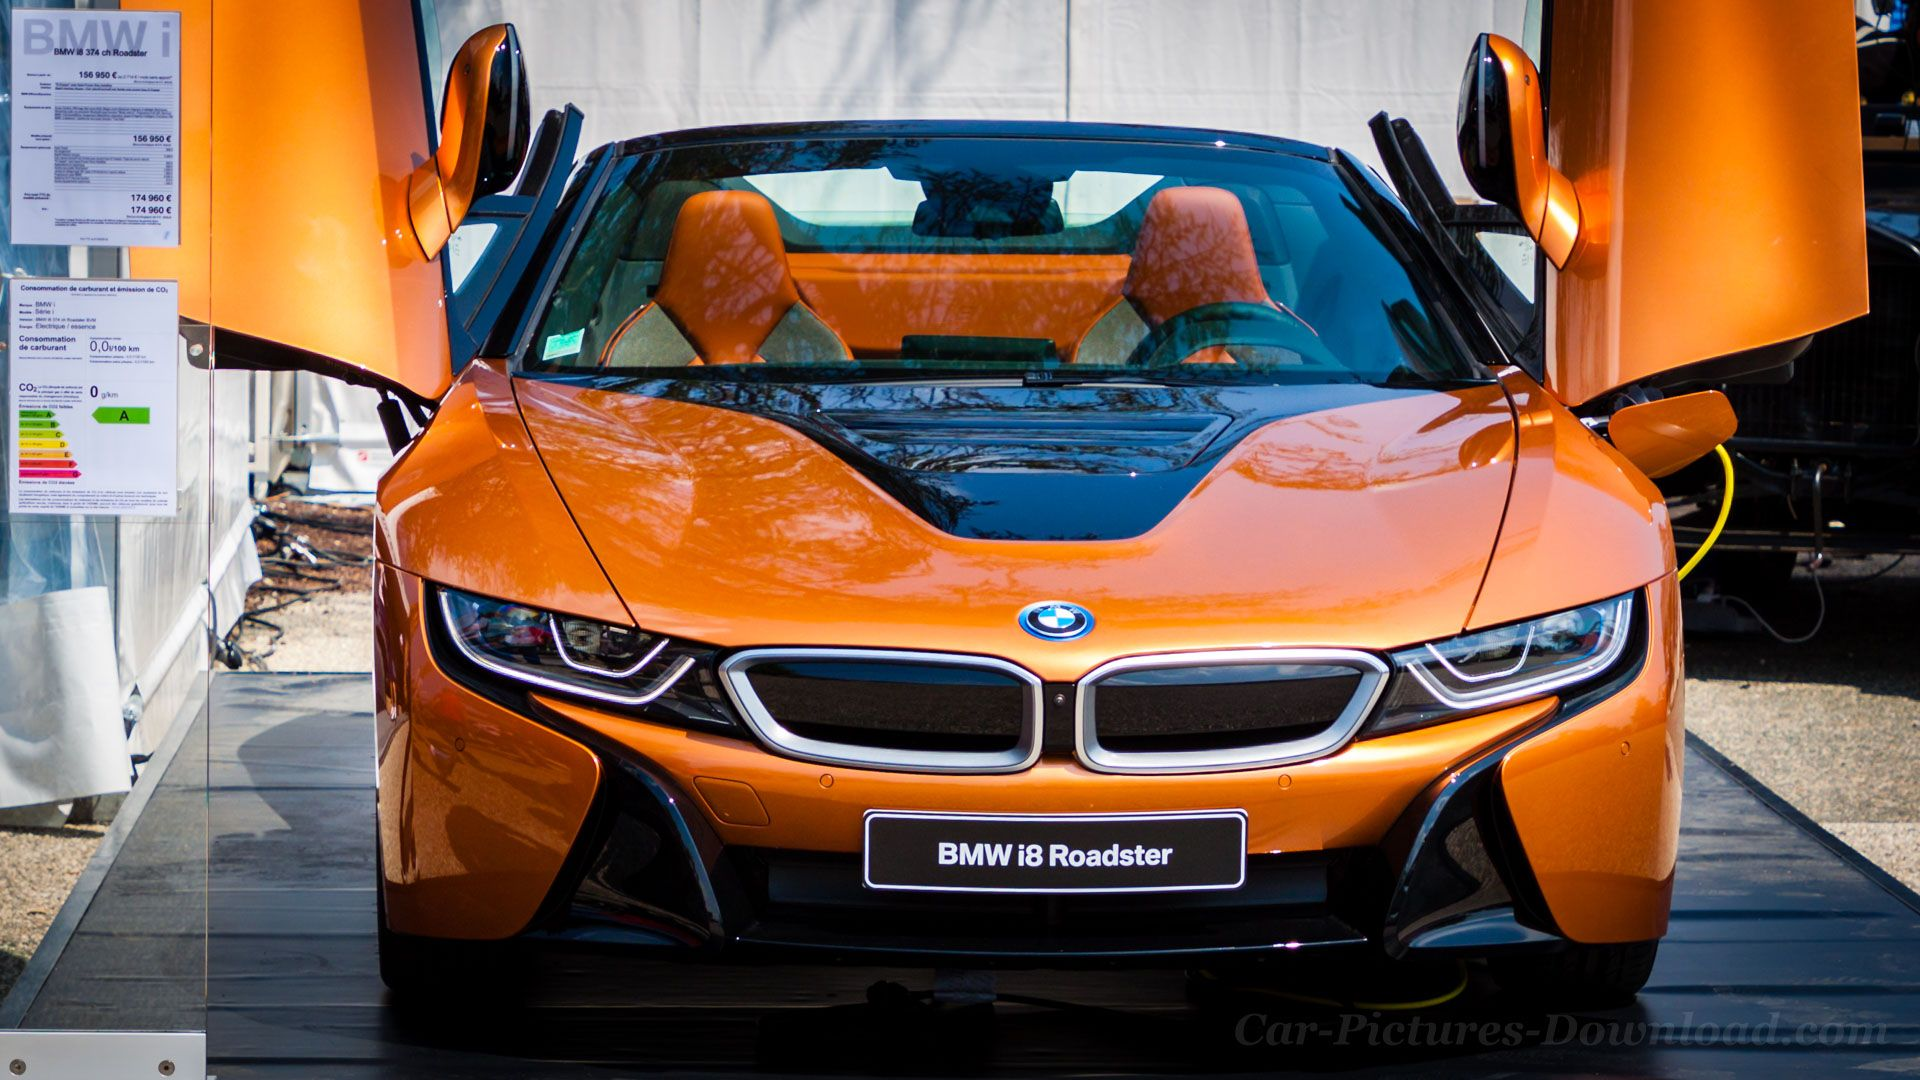 You can also upload and share your favorite bmw championship wallpapers. Luxury Cars Desktop Wallpapers On Wallpaperdog